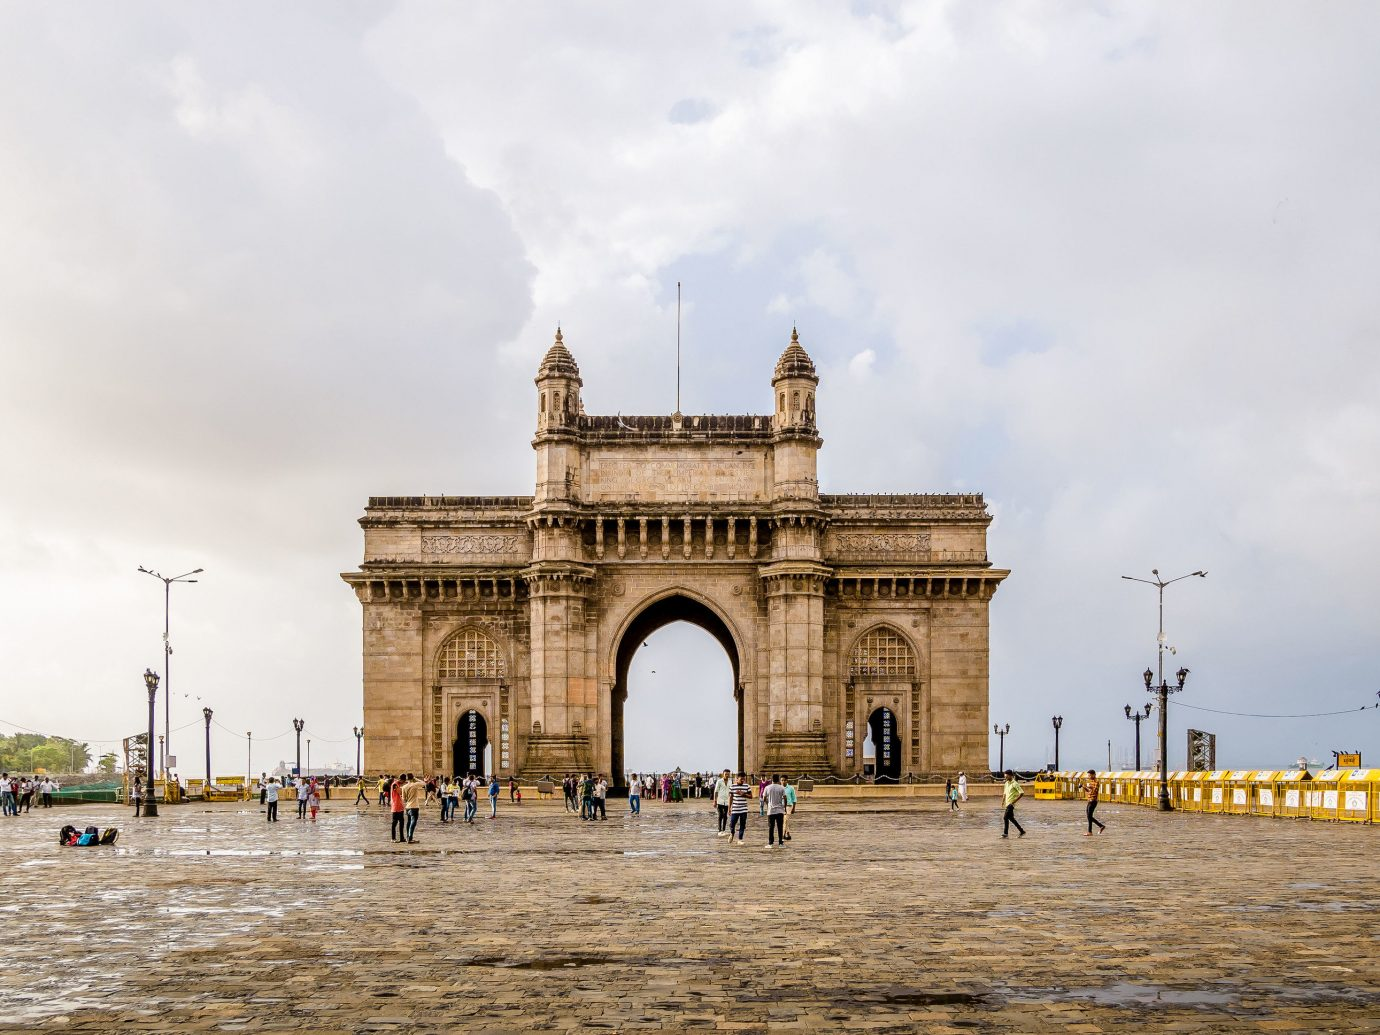 India sky landmark arch historic site history monument building tourist attraction triumphal arch town square ancient history tourism plaza facade mausoleum